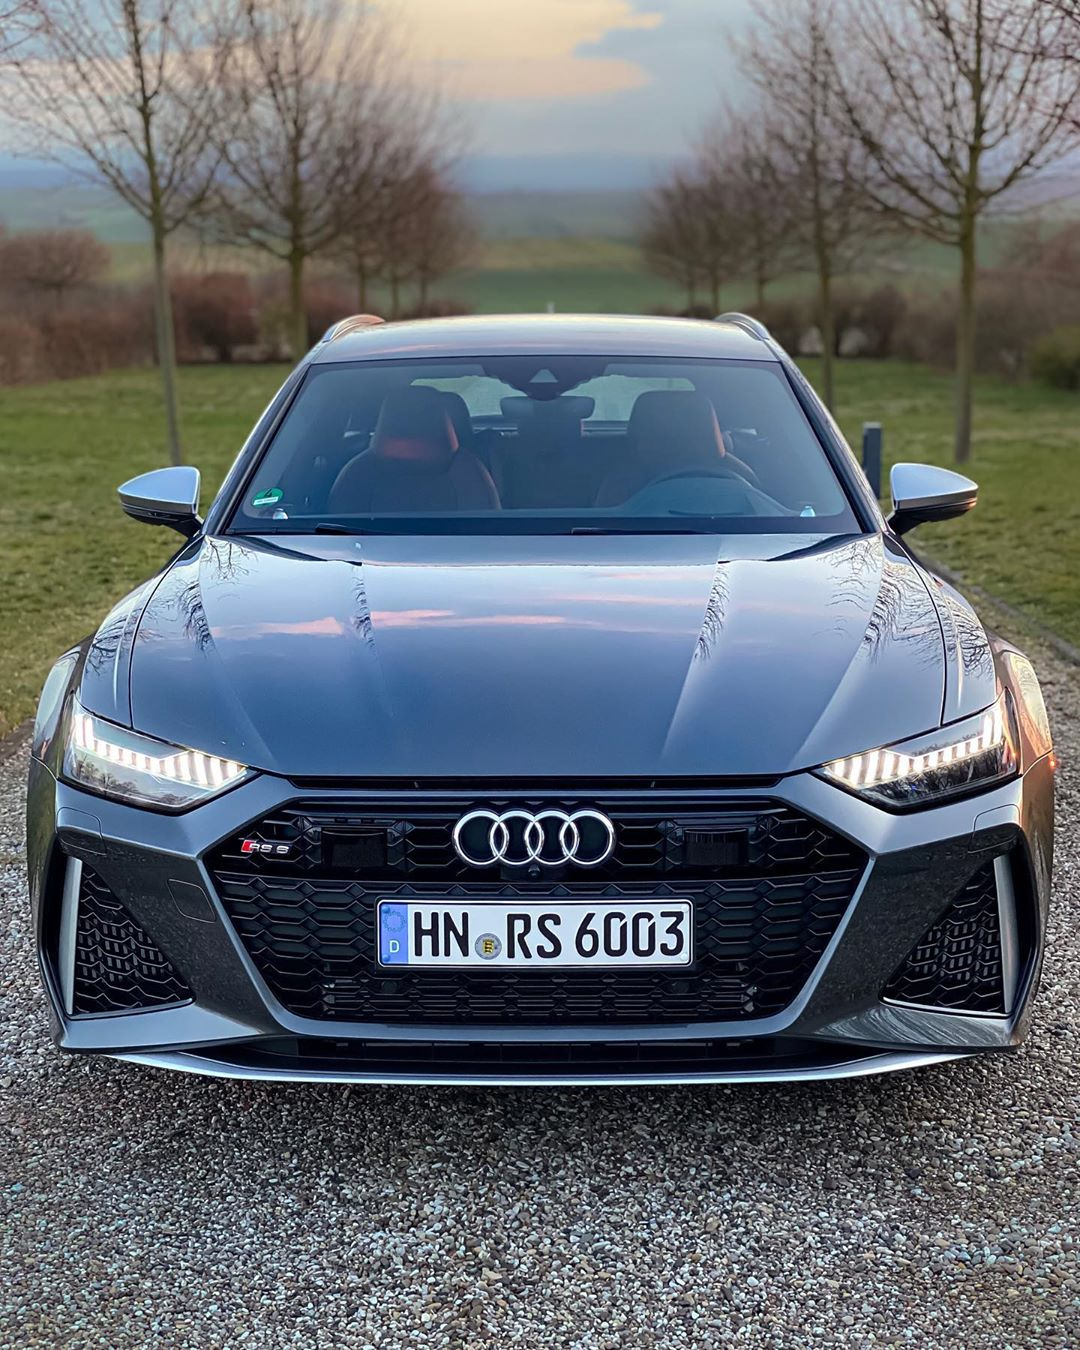 Taking a deep breath of fresh air & enjoying the beauty of this extreme Audi 😋😍 #audi #audirs6 #audisport #rs6 #rs6avant #newrs6 #rs6c8 #rs6performance #automanntv